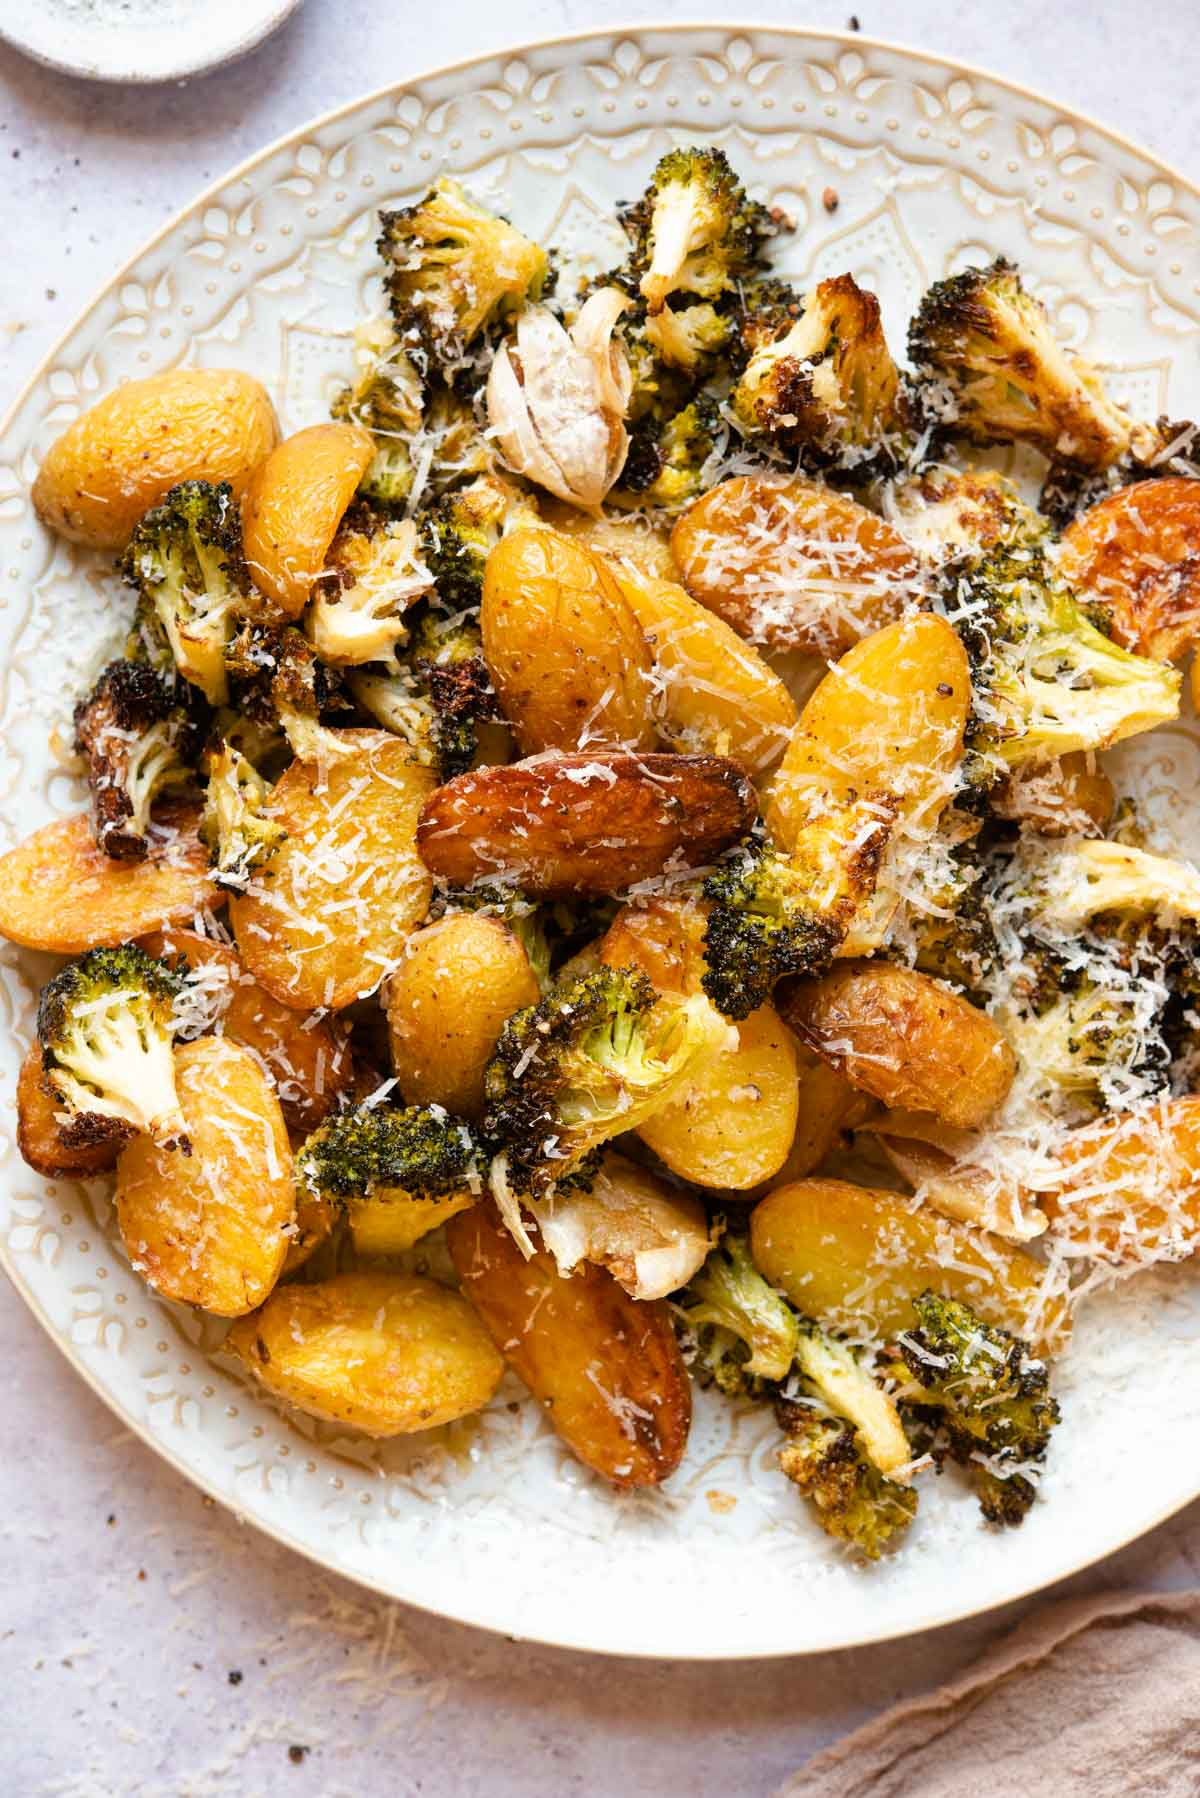 An overhead shot of roasted potatoes and broccoli on a plate